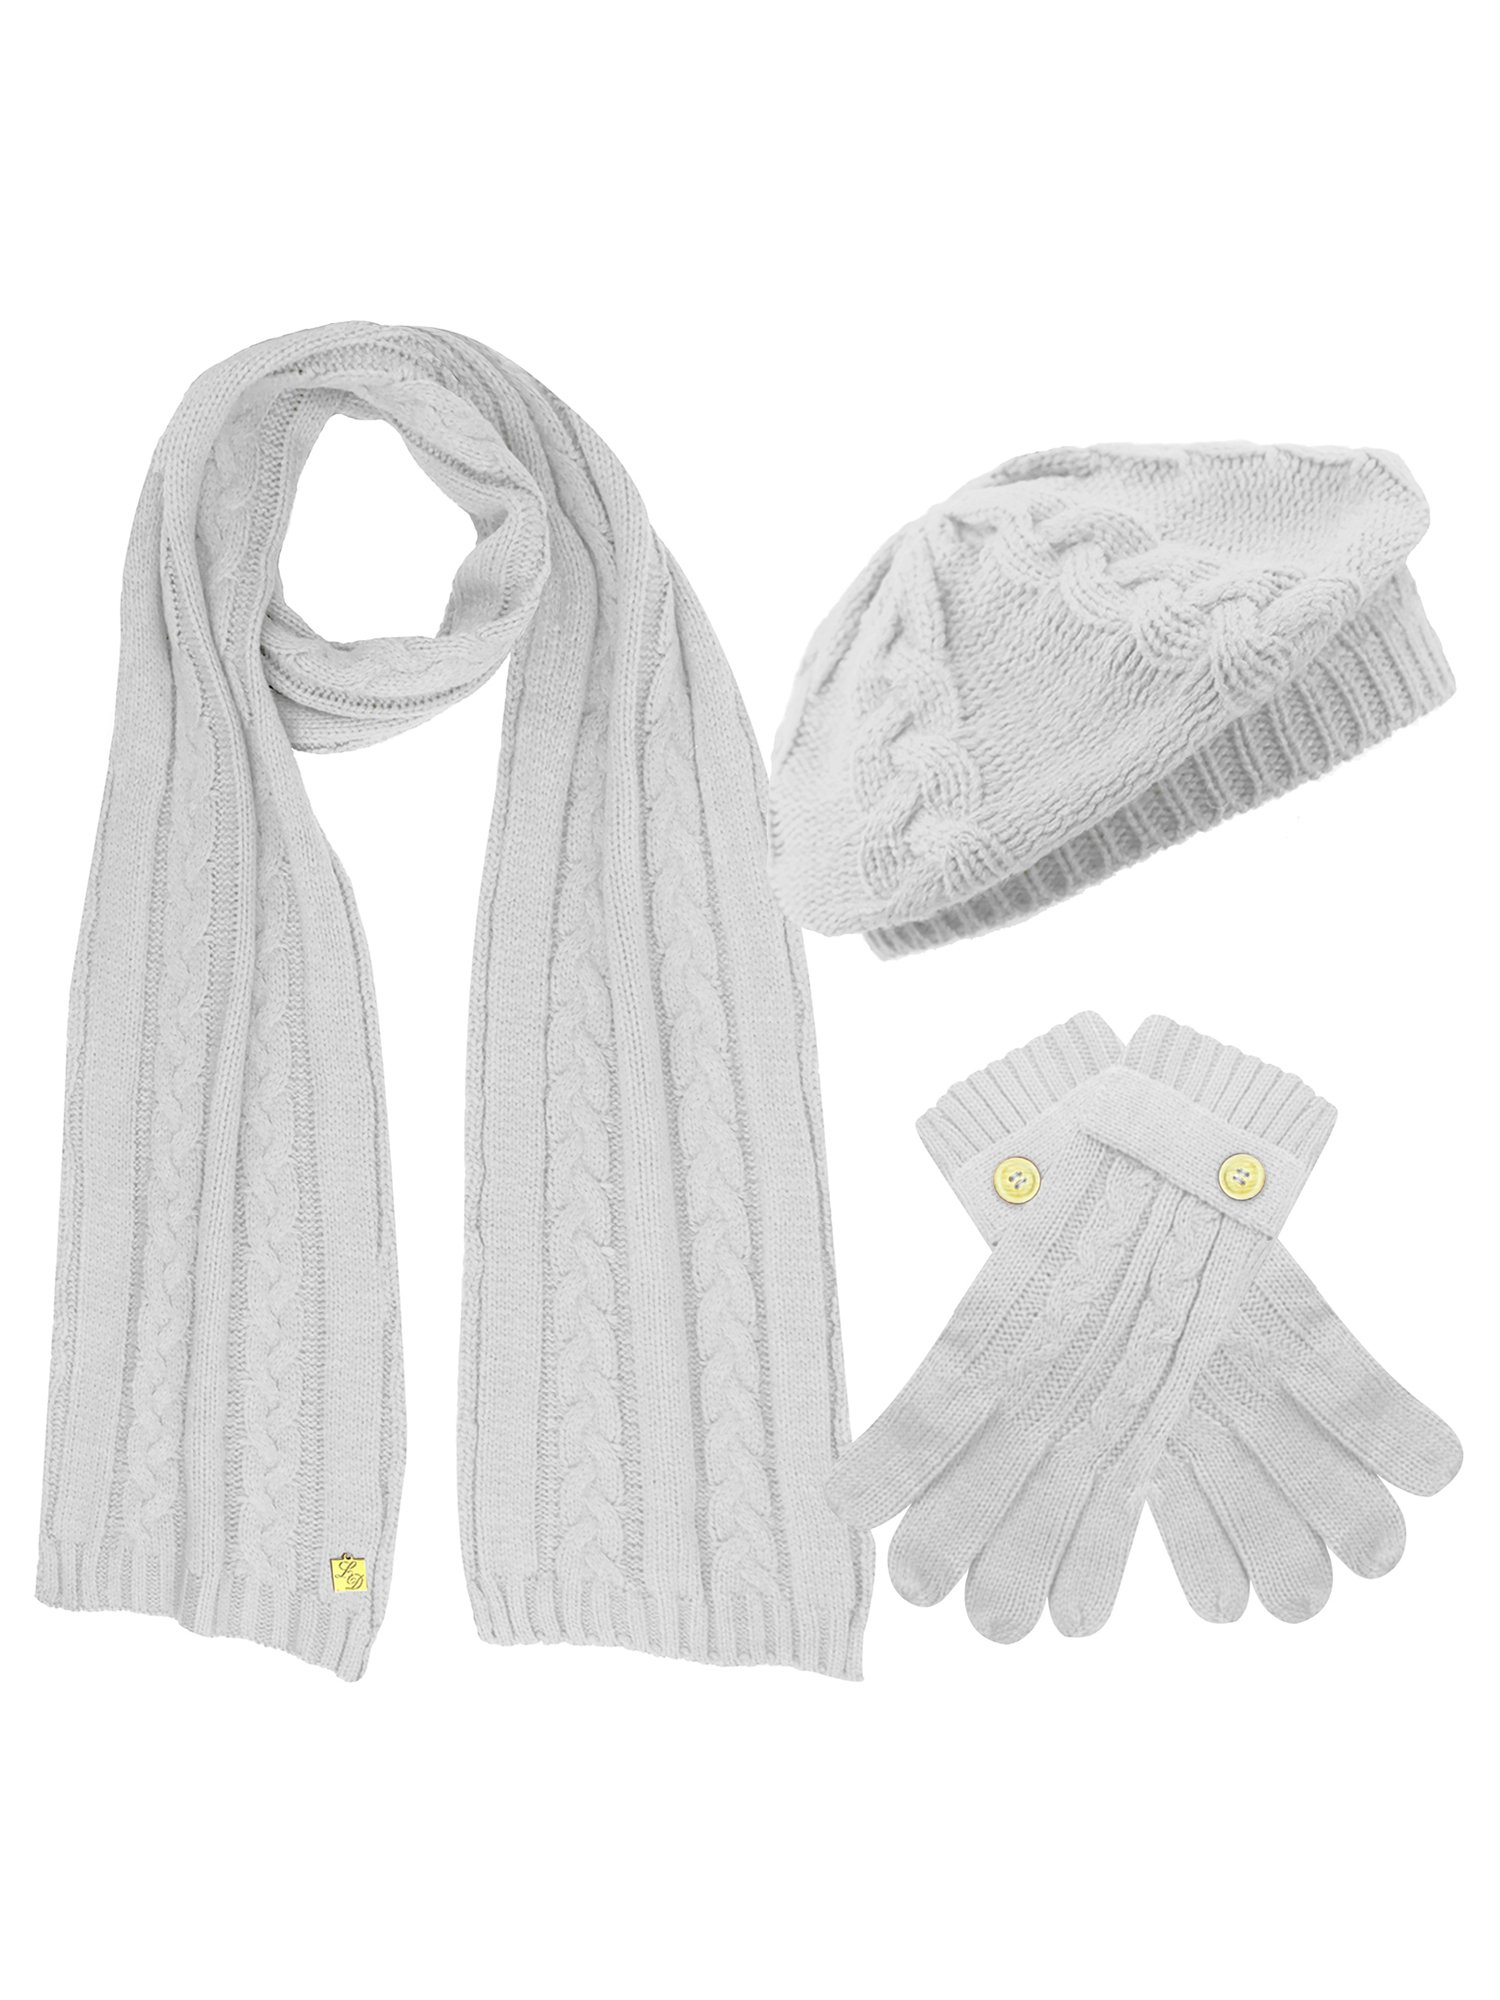 Ivory White Cable Knit Beret Hat Scarf & Glove Matching 3 Piece Set Set